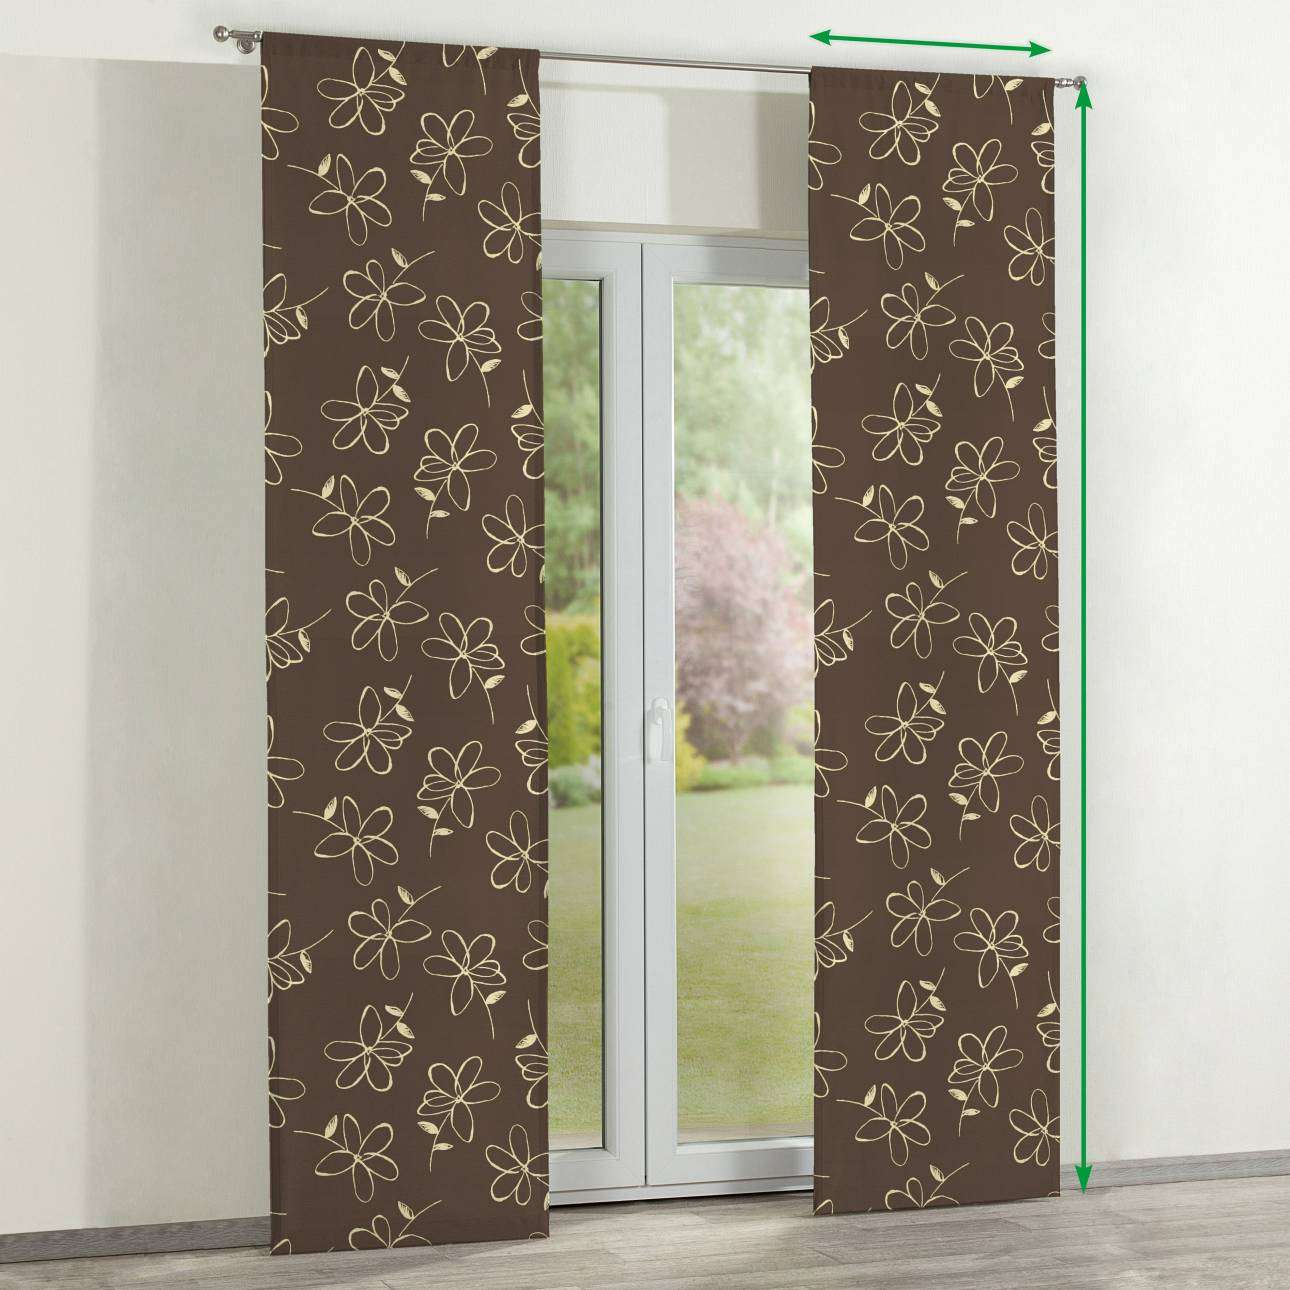 Slot panel curtains – Set of 2 in collection Flowers, fabric: 311-03